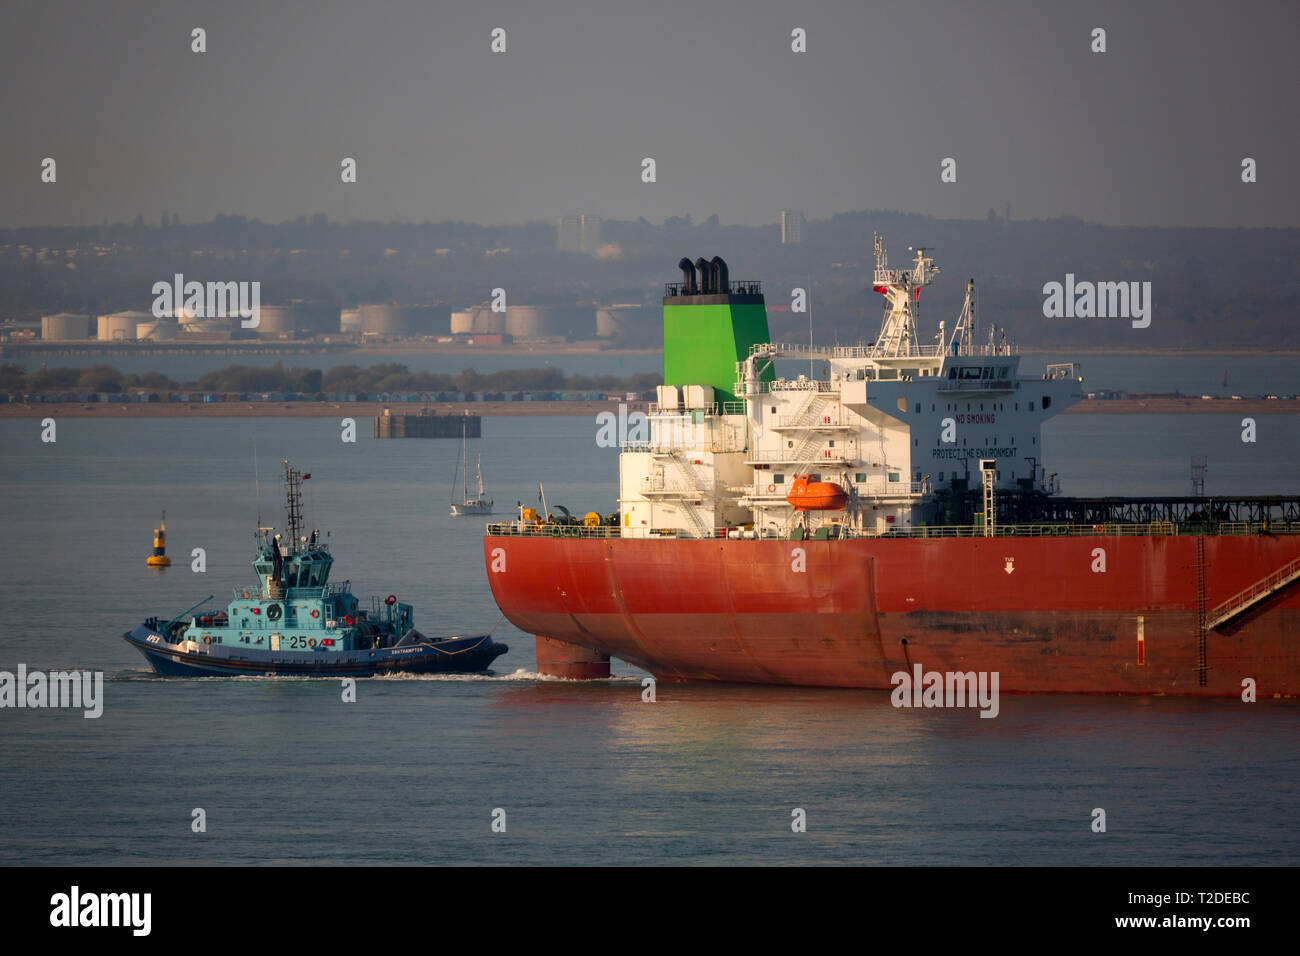 Oil,Tanker,Pacific,Jewels,Voith tractor tug,services,ABP,Southampton,Water,port,Fawley,Oil,Refinery,The Solent,Cowes,Isle of Wight,UK, - Stock Image